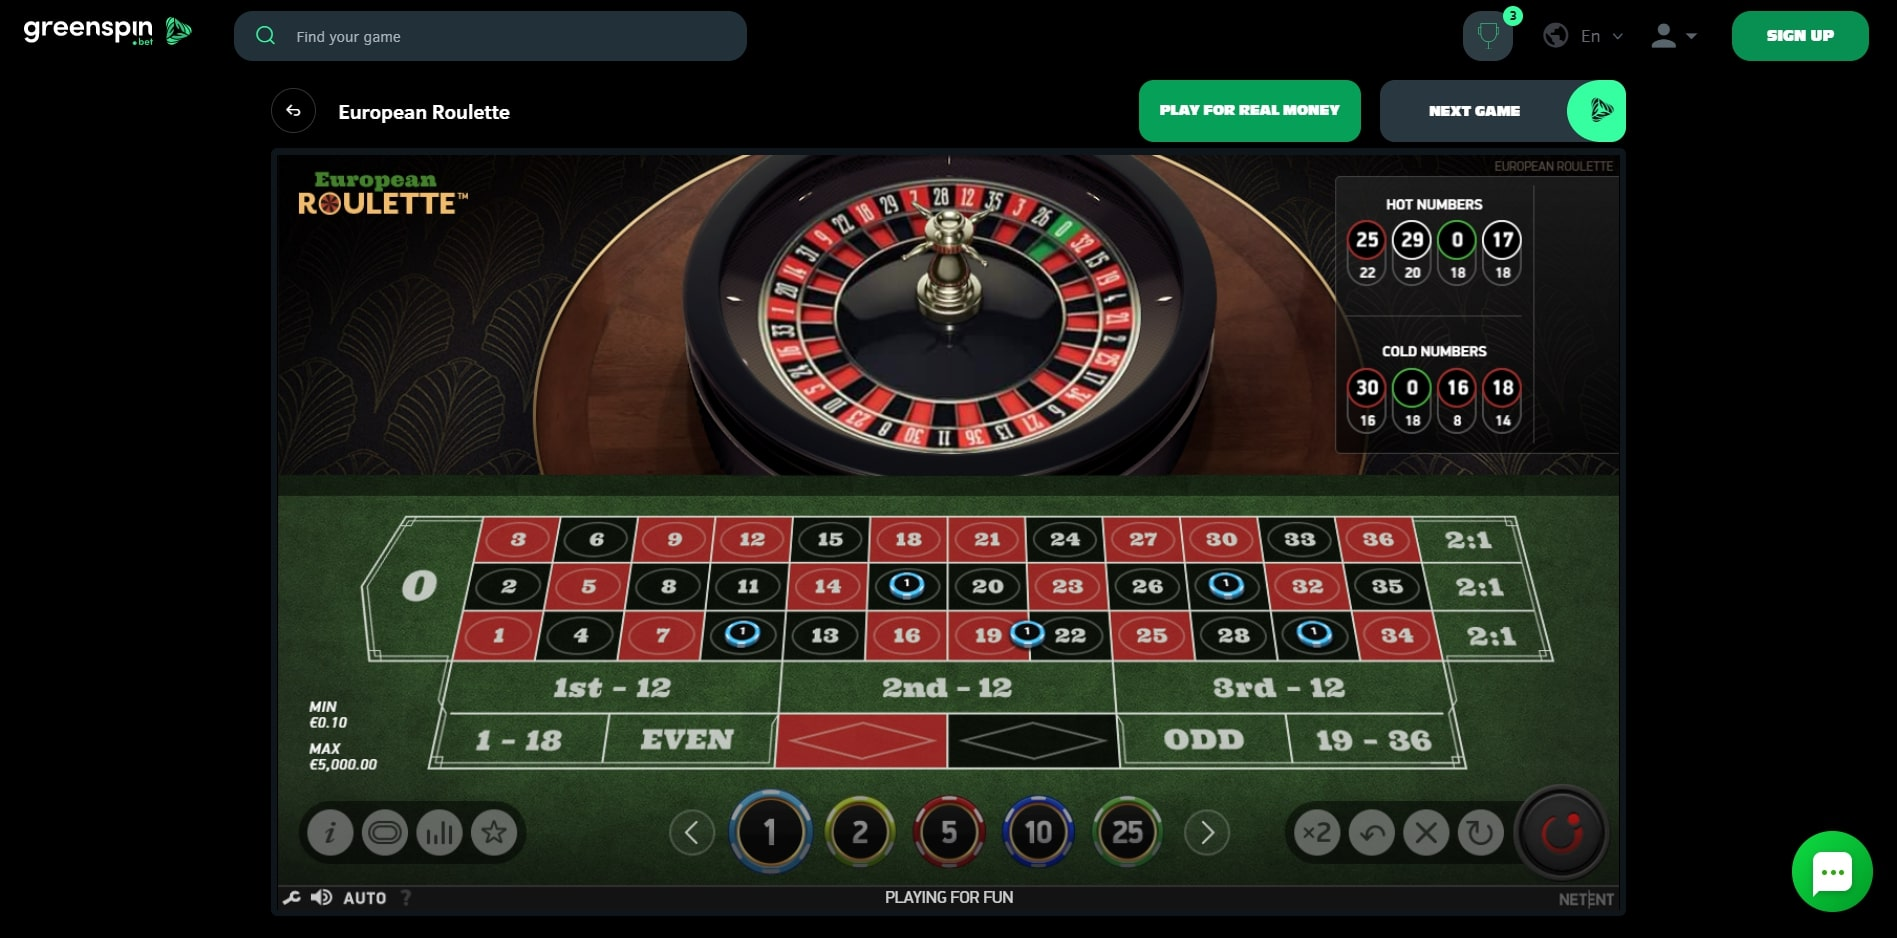 Greenspin Casino Casino Games